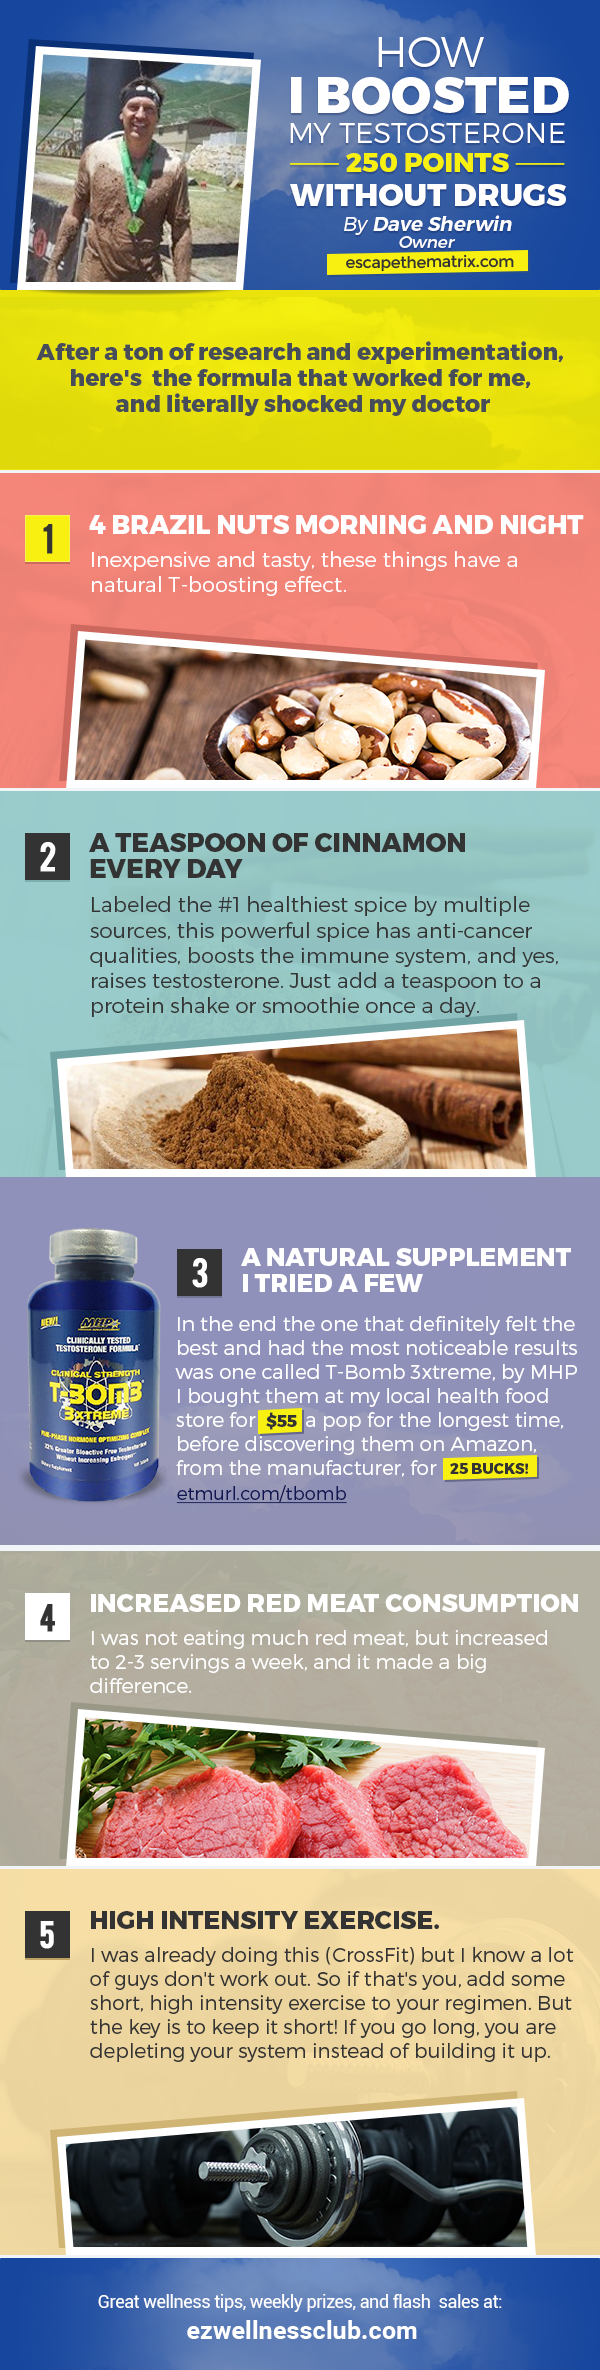 How I Boosted My Testosterone 250 Points Without Drugs Infographic